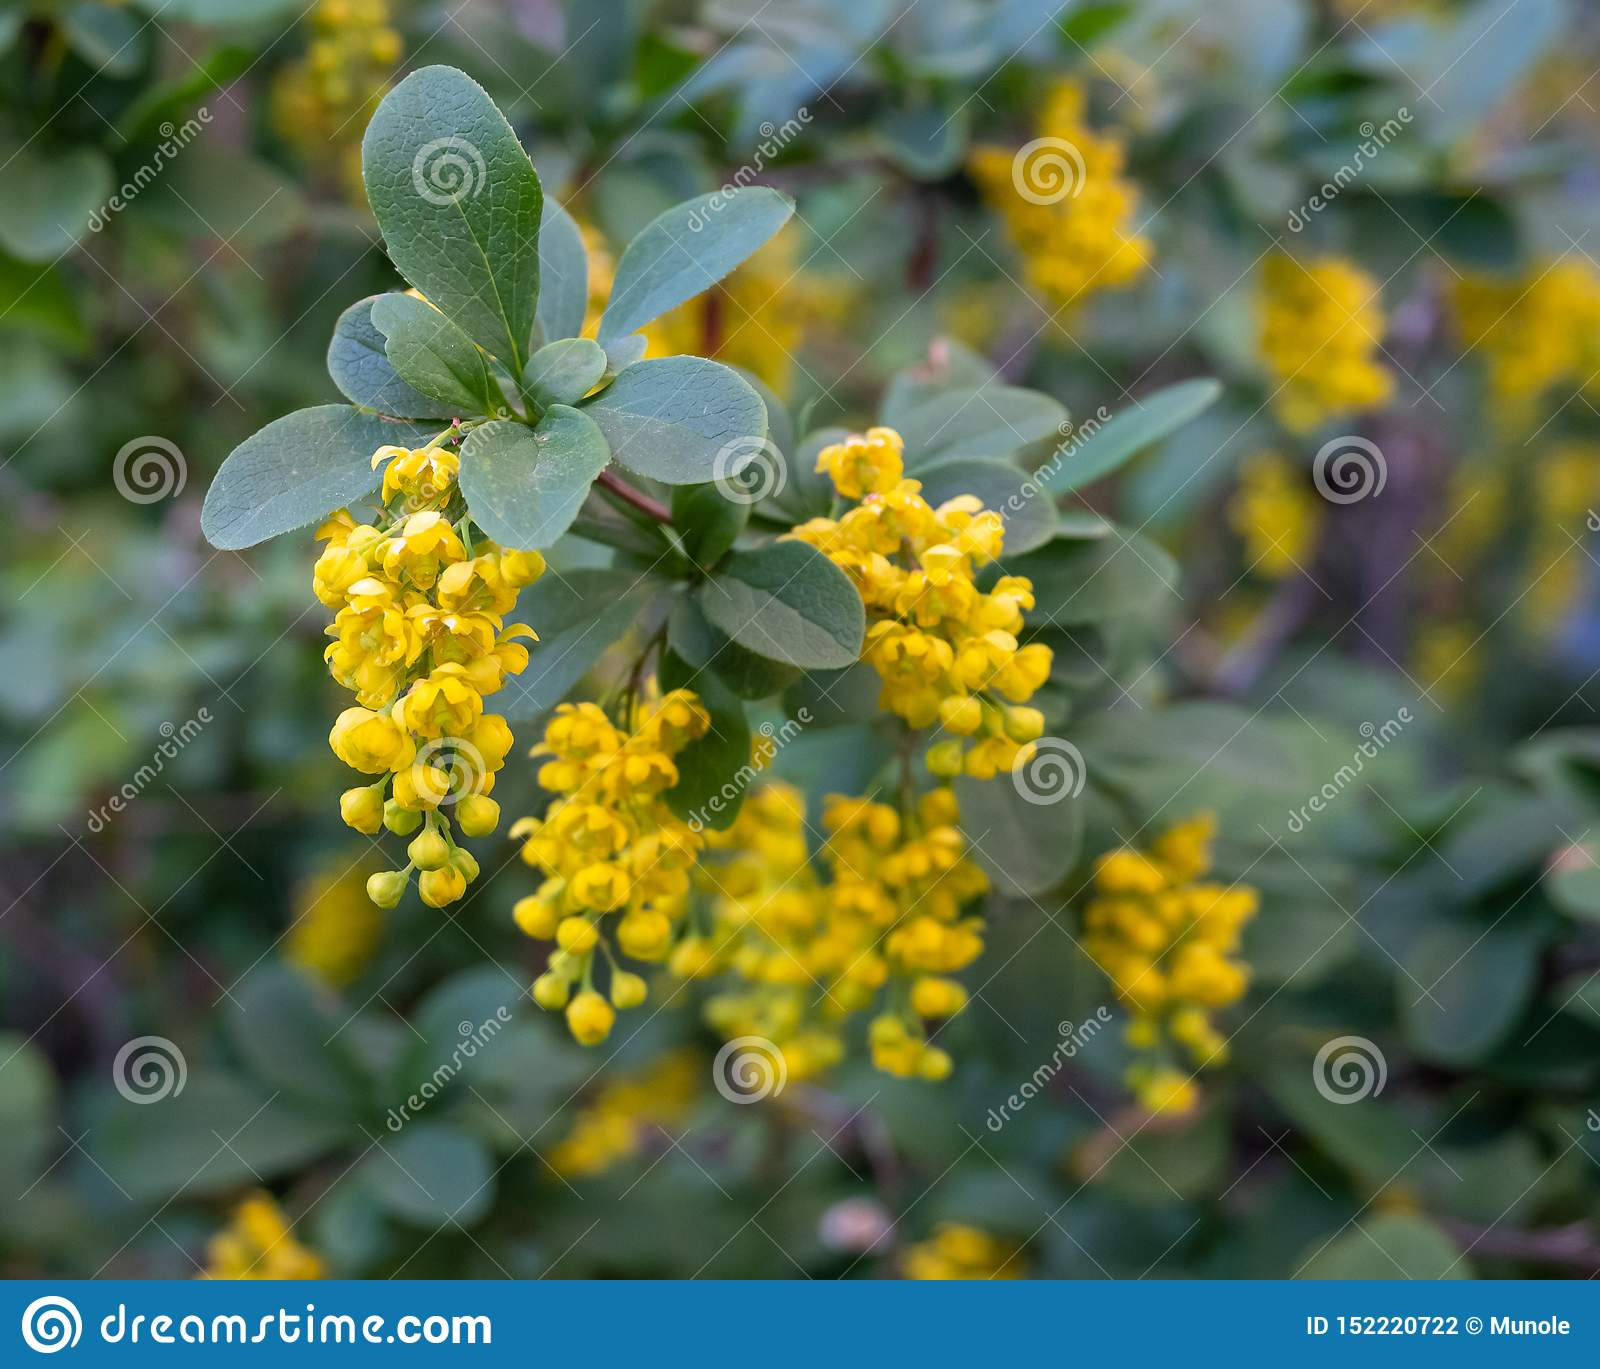 Yellow flowers of the medicinal plant barberry.